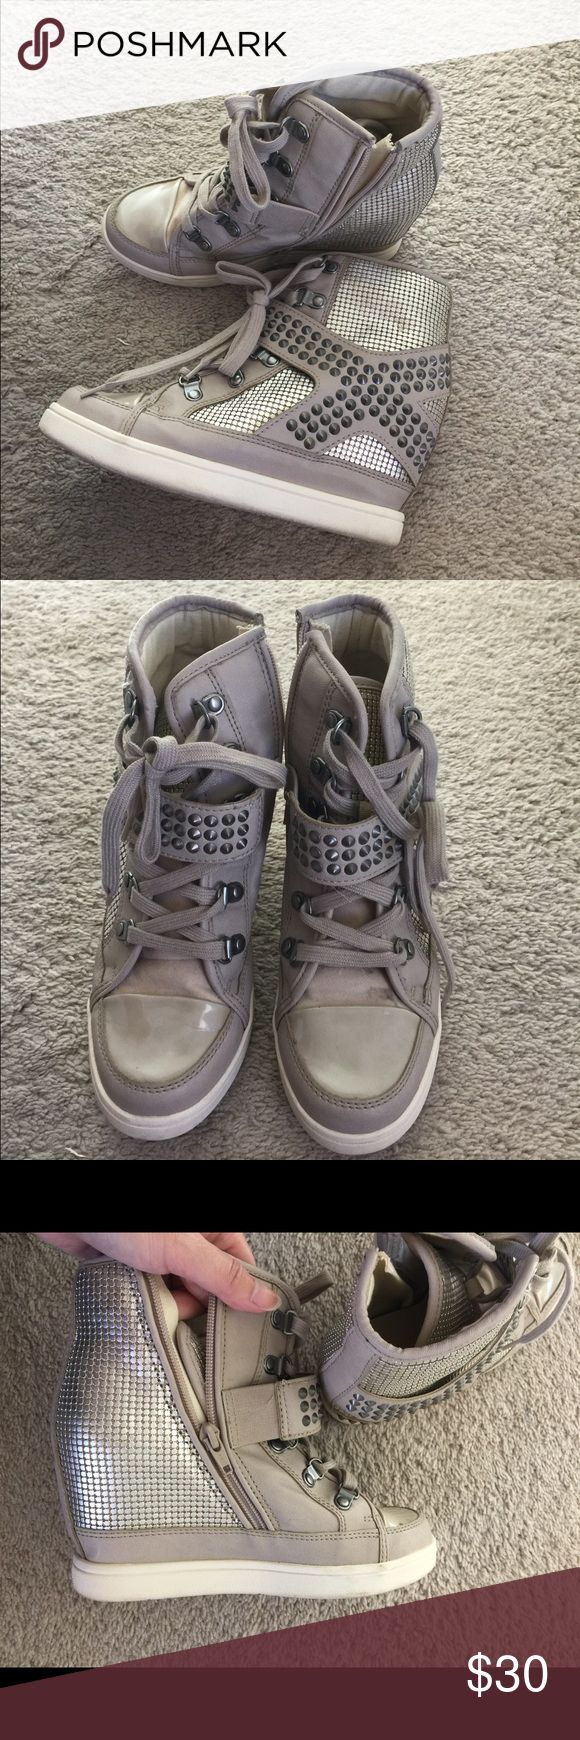 ALDO Wedge Sneaker Metallic and cream wedge sneaker from Aldo. Worn only a few times! Aldo Shoes Wedges